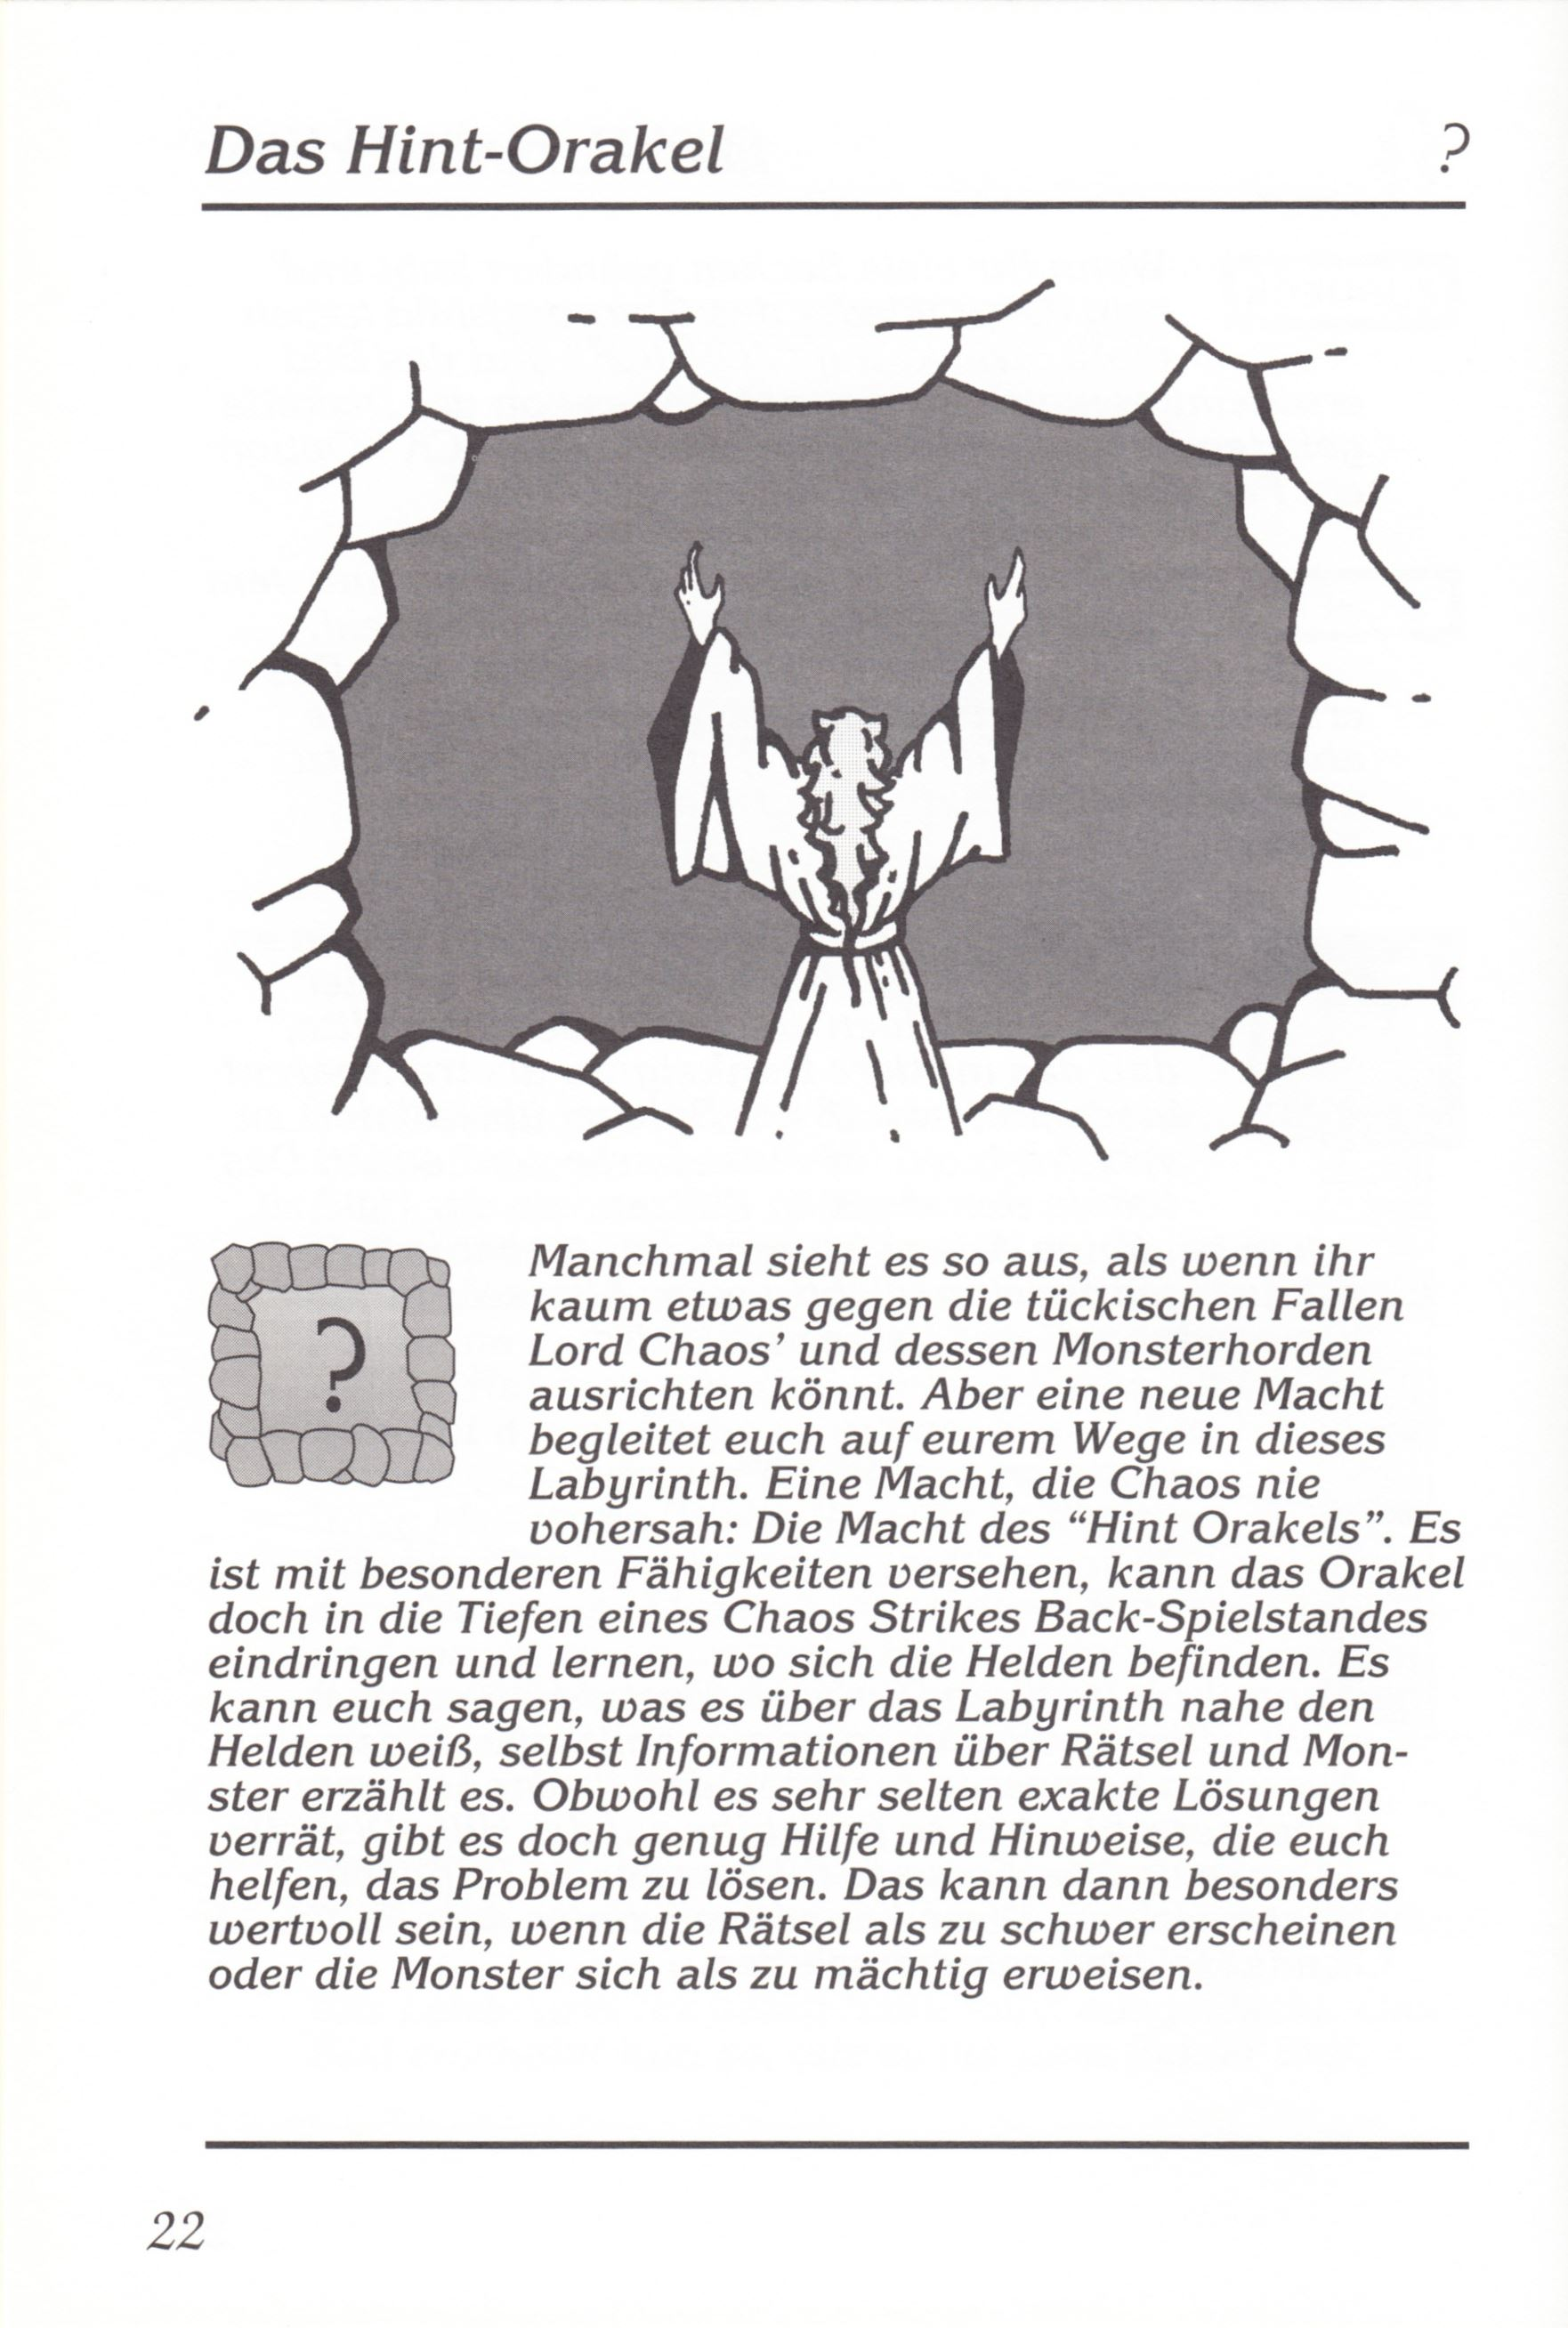 Game - Chaos Strikes Back - DE - Amiga - Manual - Page 024 - Scan